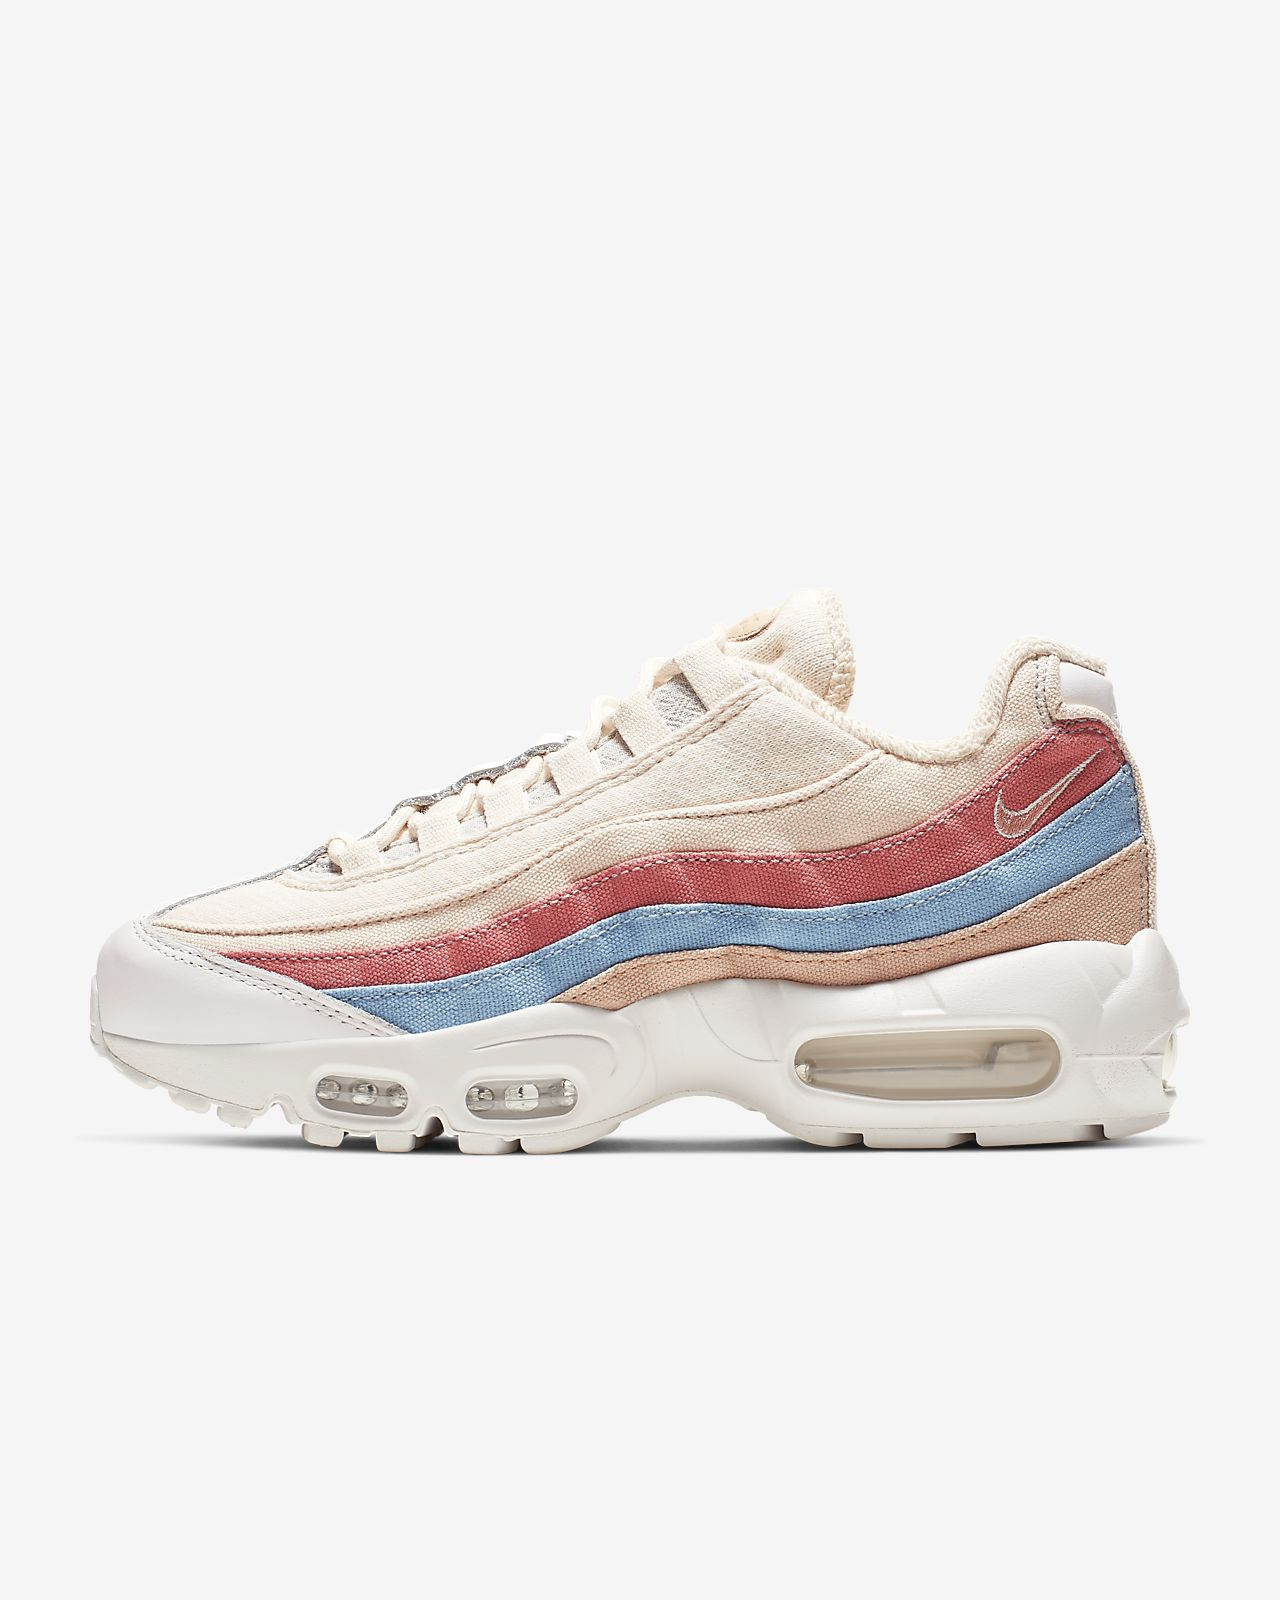 hot sale online f6005 efccf ... Nike Air Max 95 QS Women s Shoe